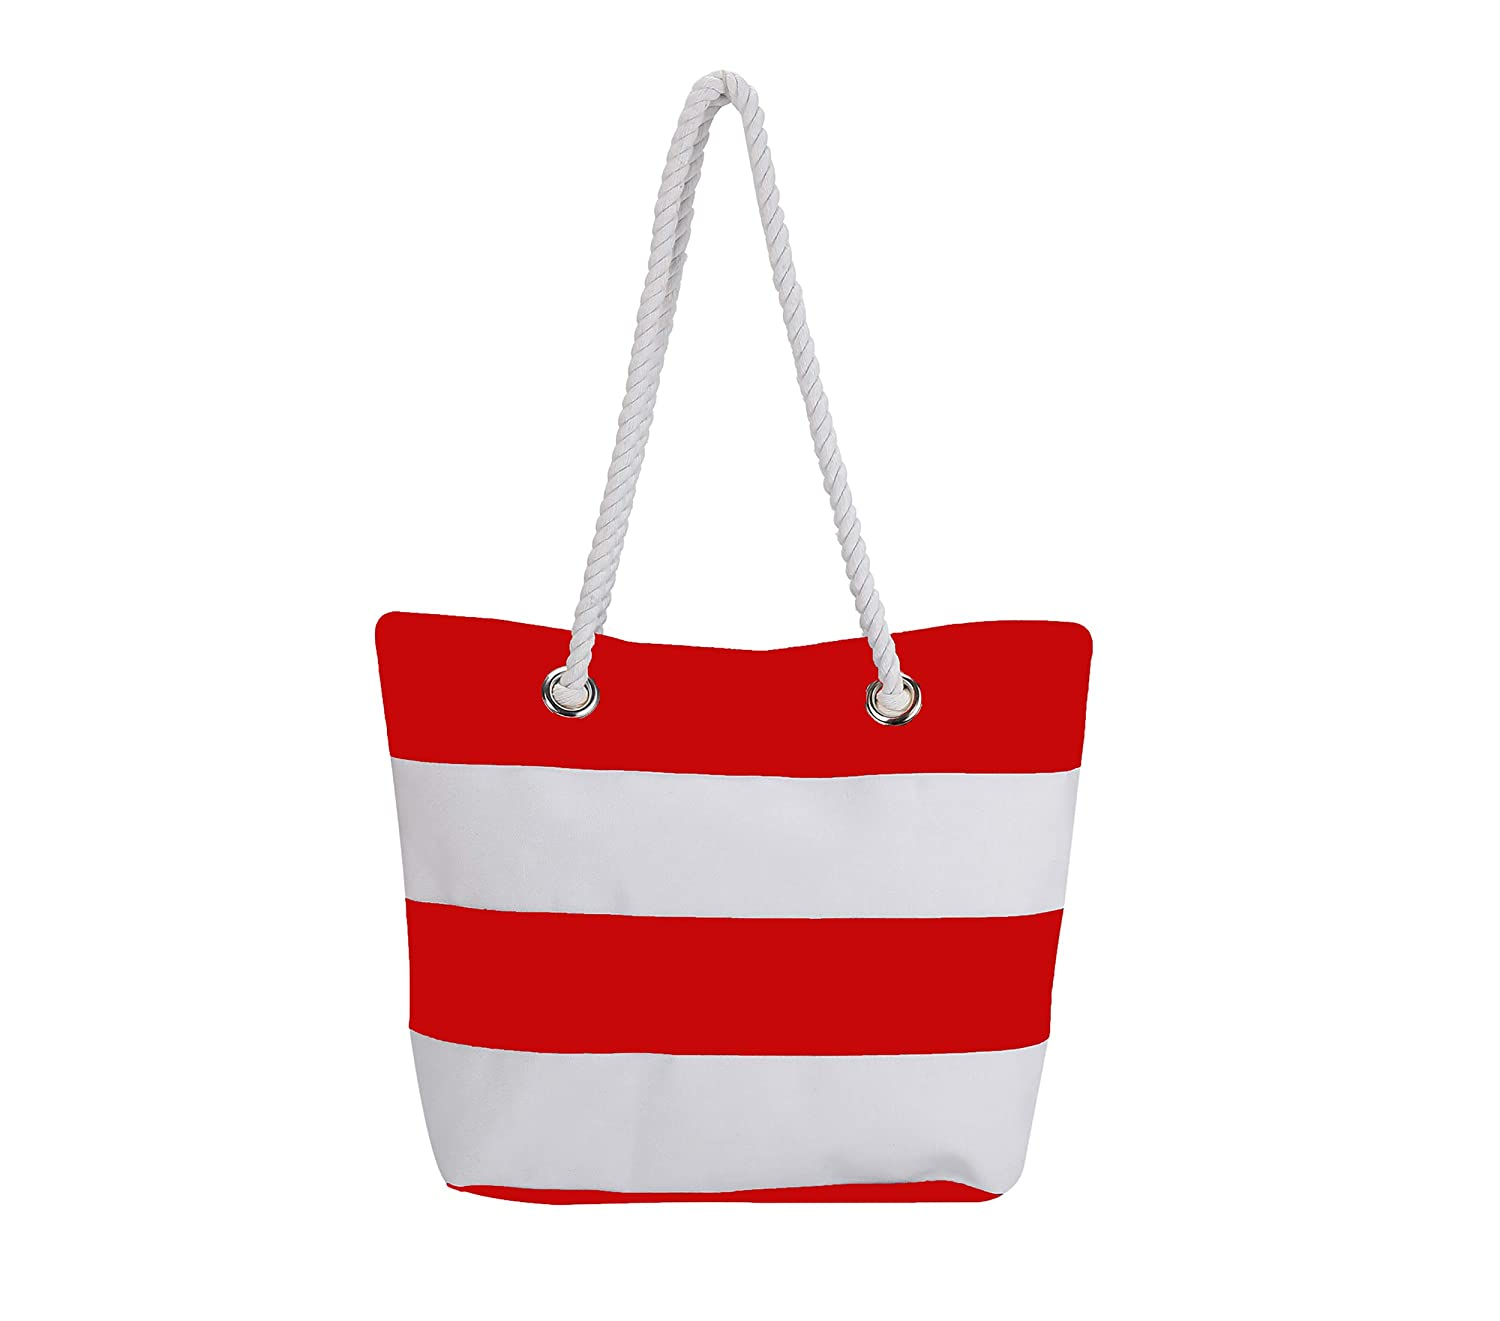 Red Beach Bag with Inner Zipper Canvas Tote Bags for Women